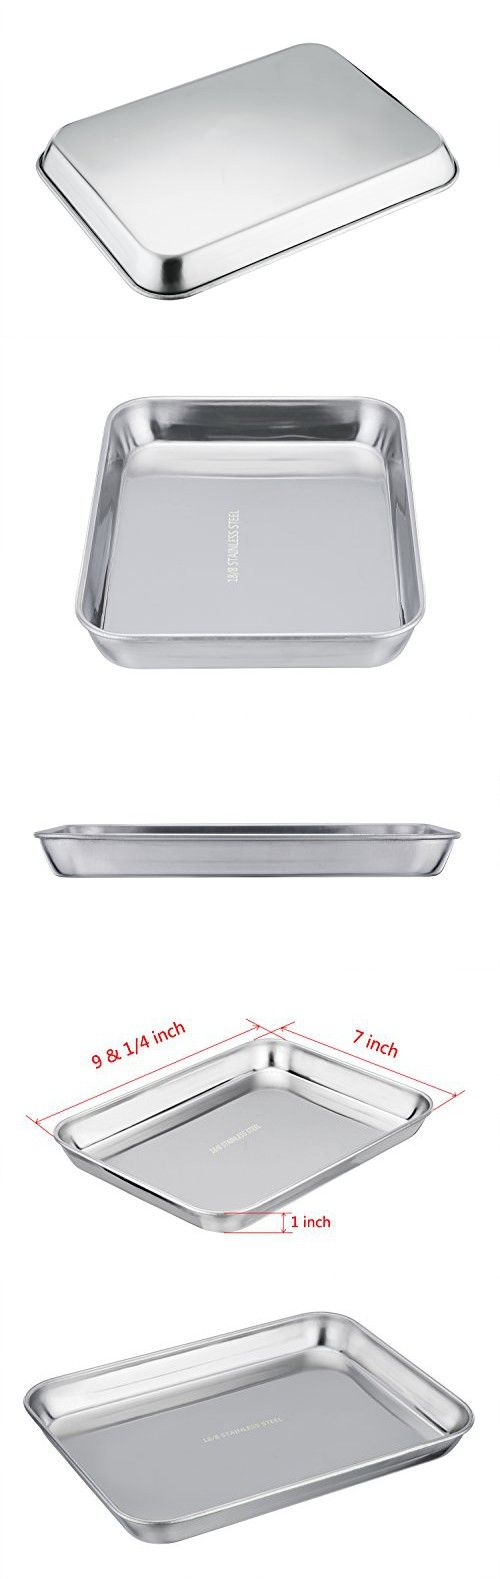 TeamFar 304 18/8 Stainless Steel Toaster Oven Pan Tray Ovenware, 7''x9''x1'', Heavy Duty & Healthy, Mirror Finish & Easy clean, Deep Edge, Dishwasher Safe (18/8 Steel)